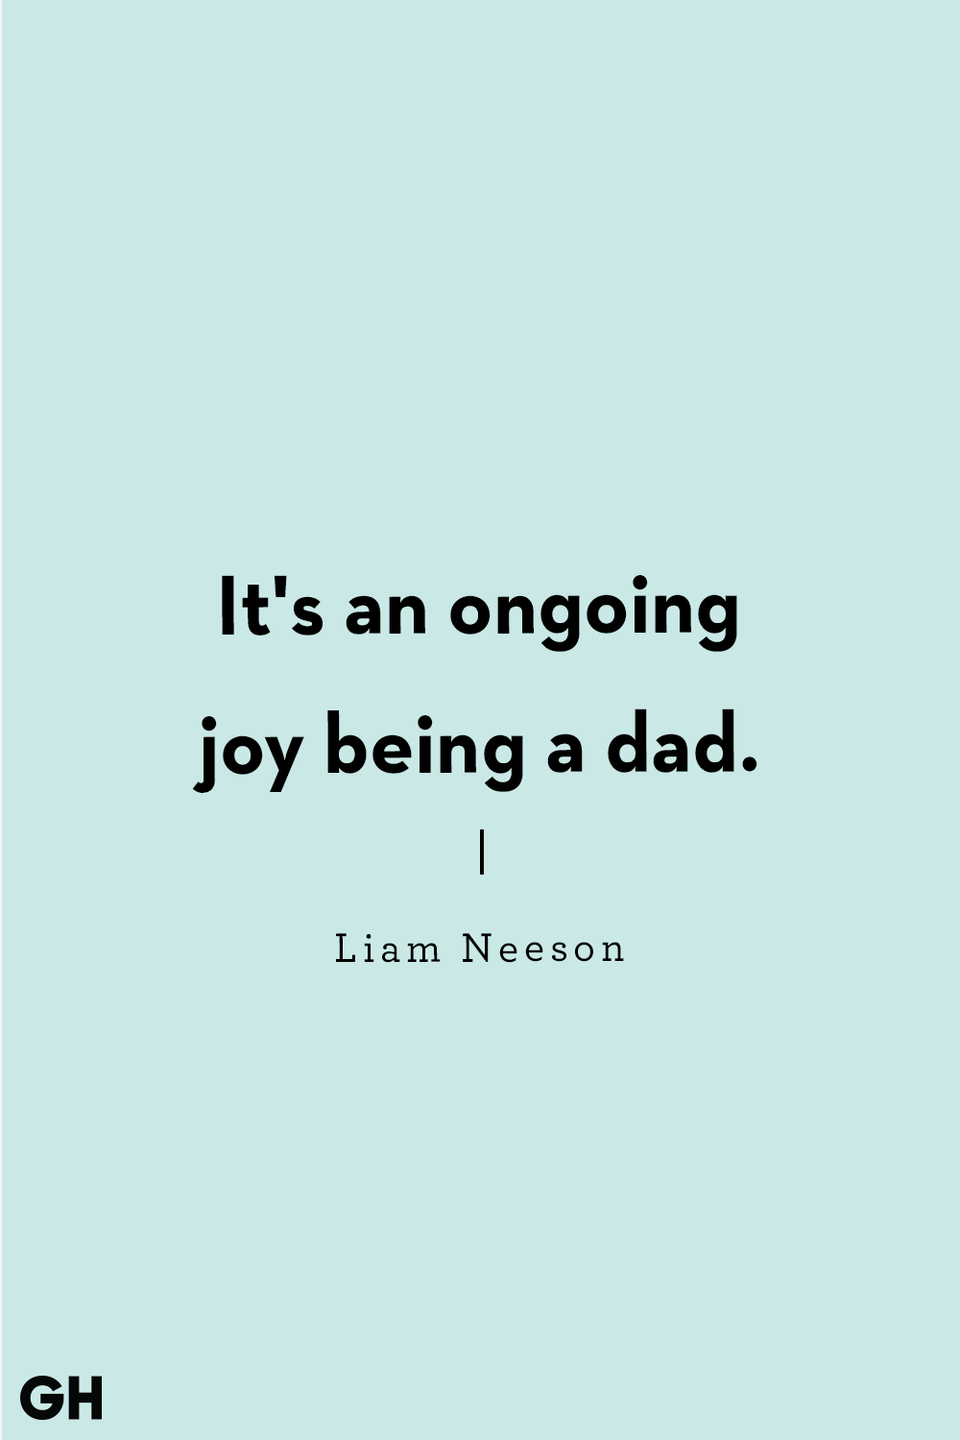 <p>It's an ongoing joy being a dad.</p>